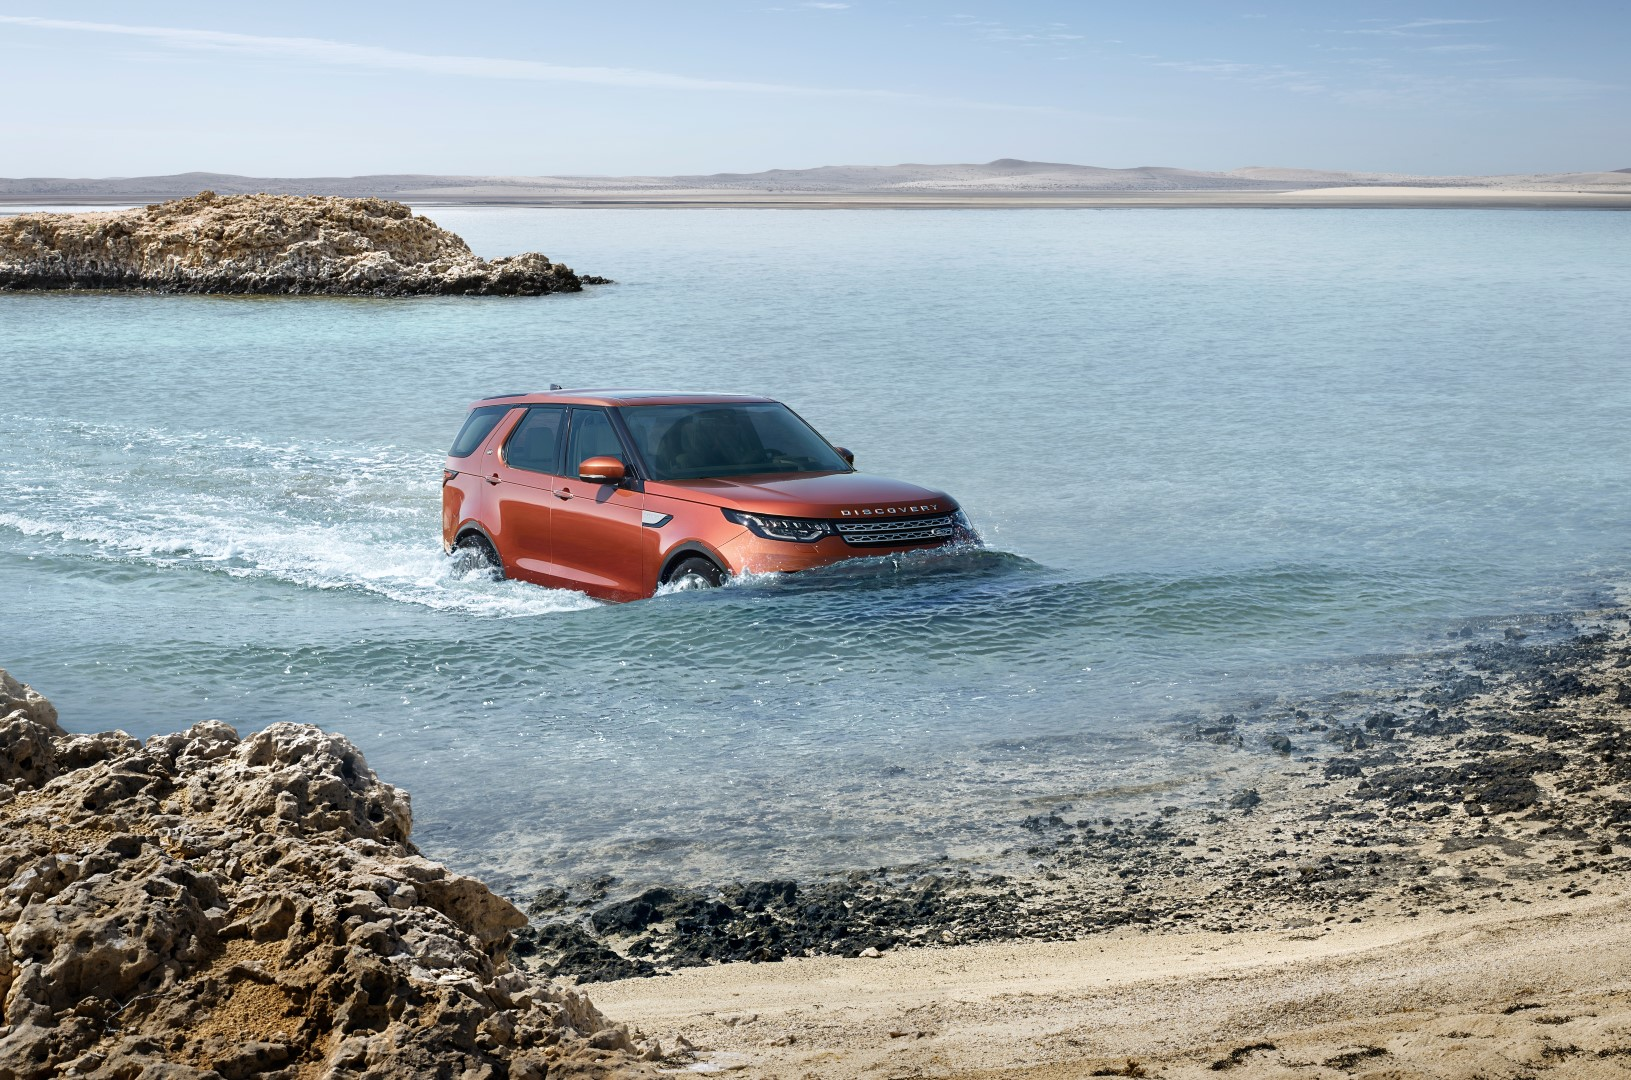 land rover discovery_wadingfront28091101